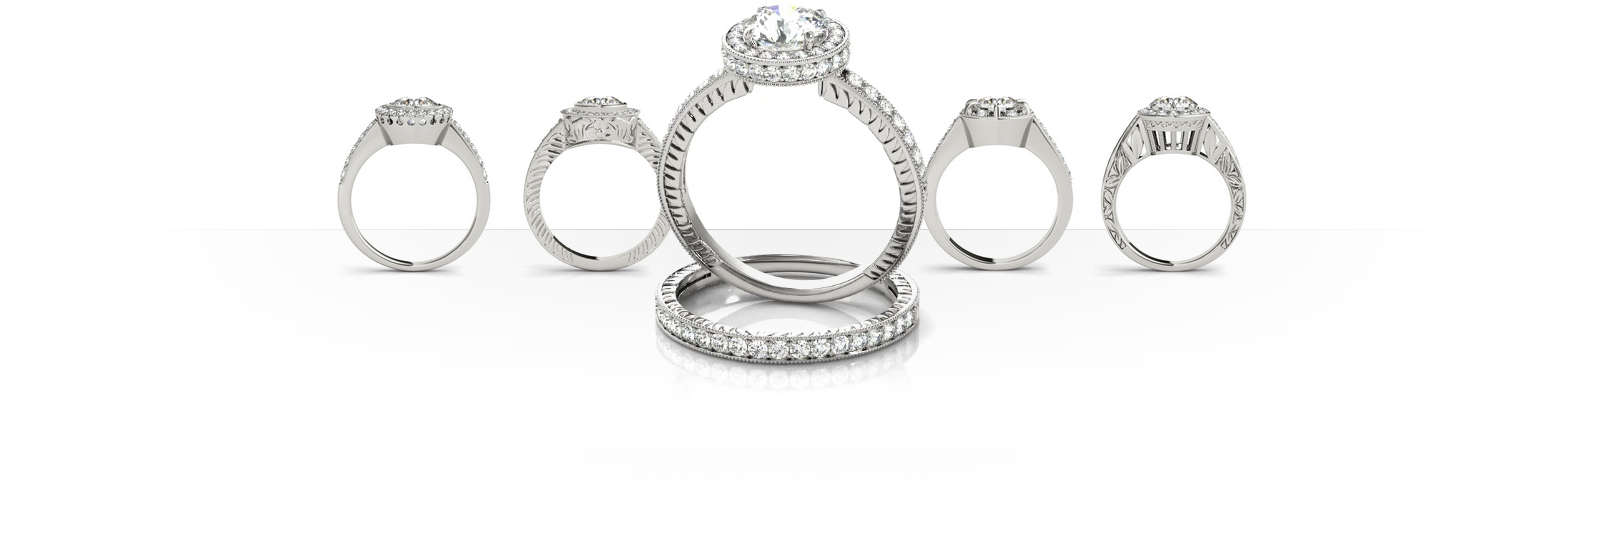 Build your own Engagement Ring online at Vons Jewelry